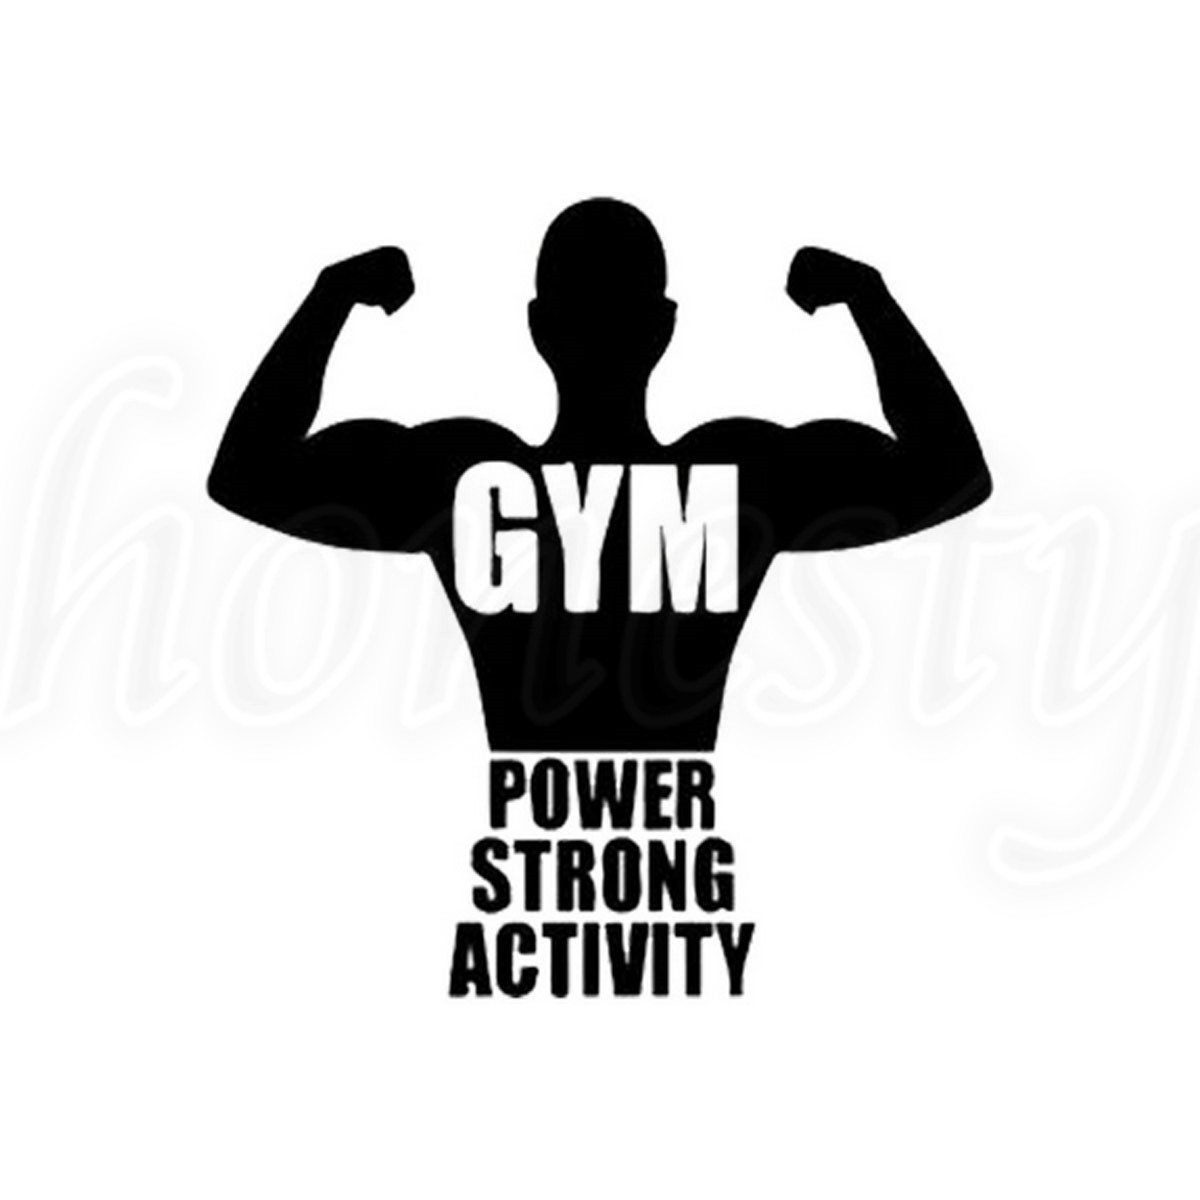 Power Strong Activity Gym Laptop Window Glass Decor Wall